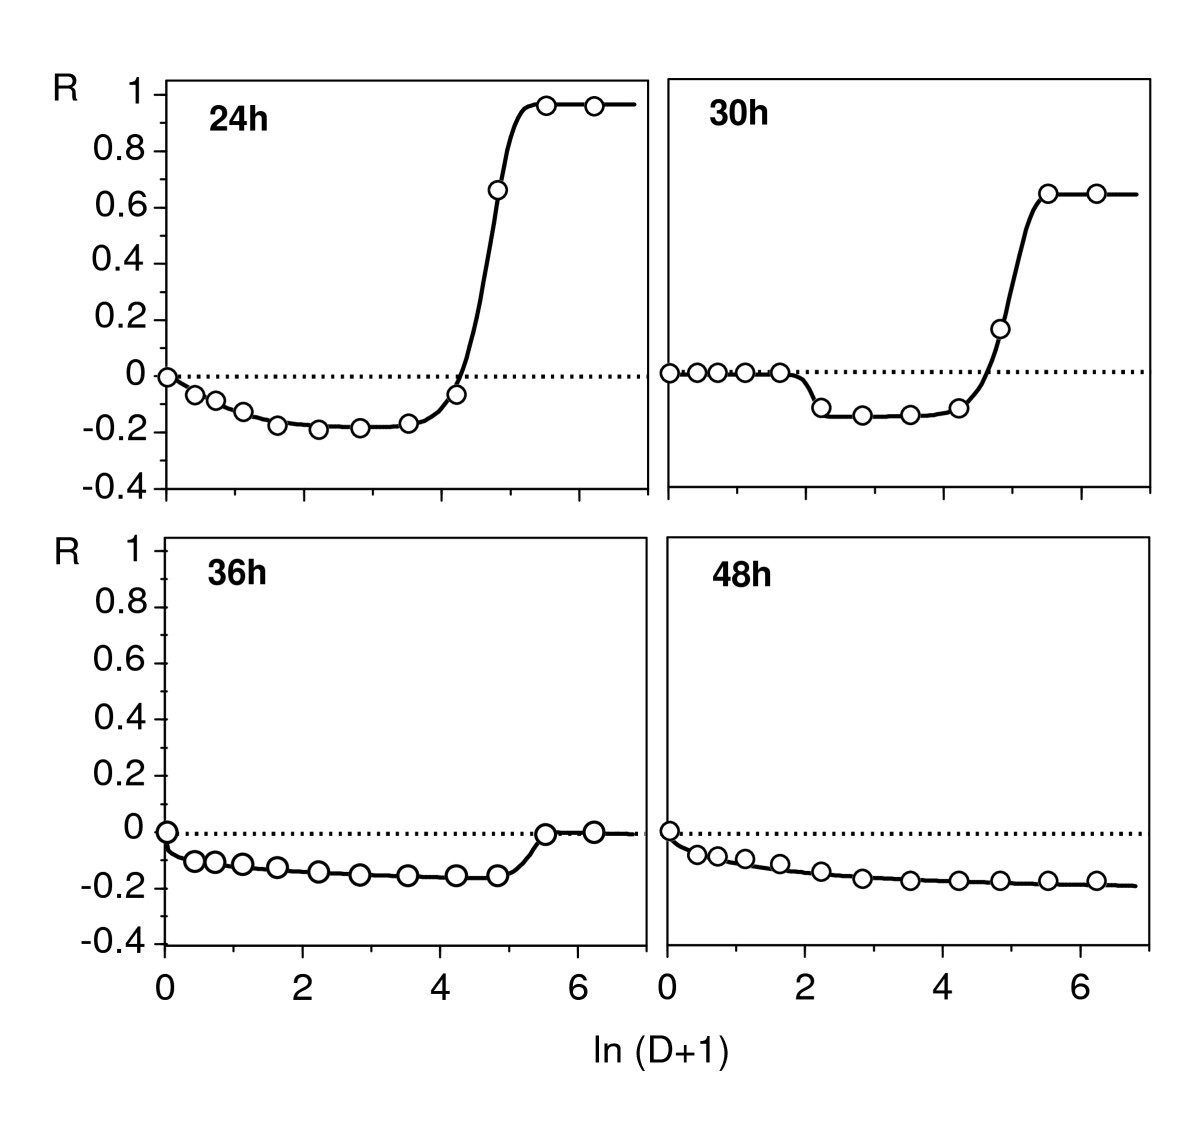 http://static-content.springer.com/image/art%3A10.1186%2F1471-2180-10-220/MediaObjects/12866_2009_Article_1176_Fig2_HTML.jpg